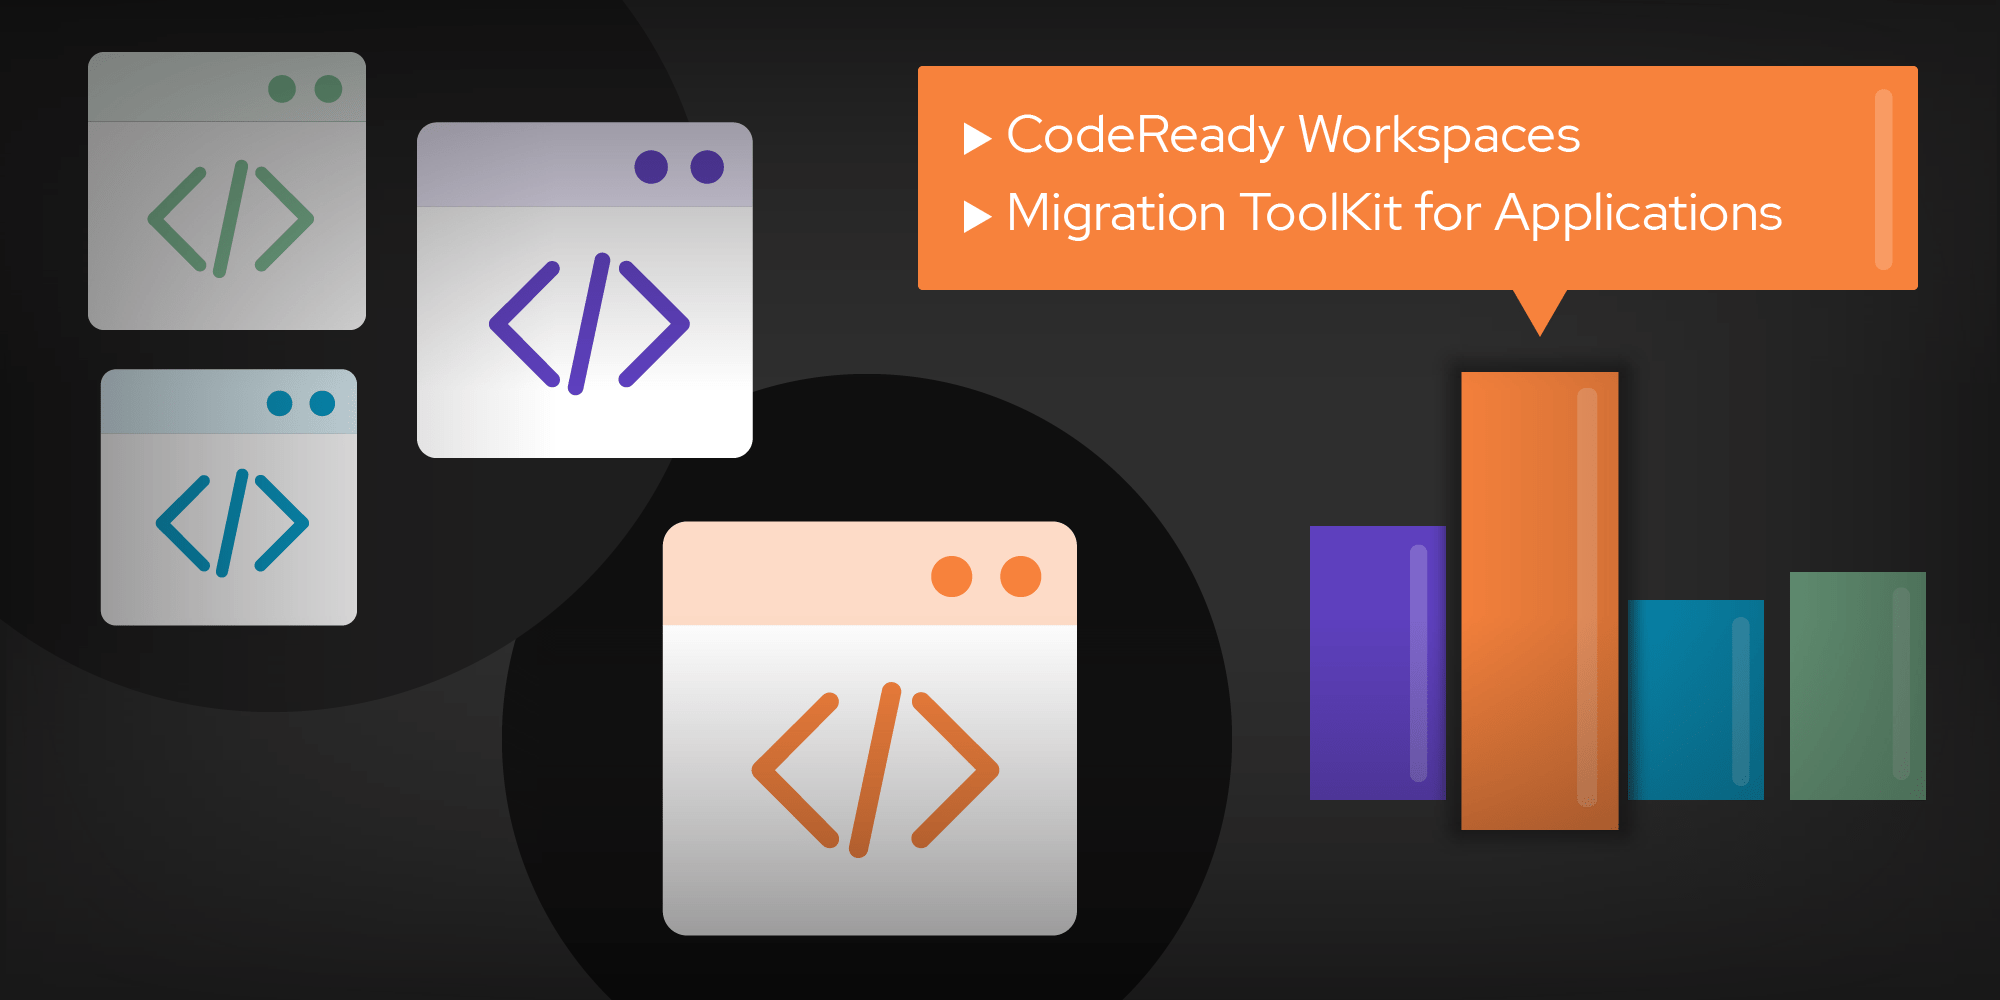 Analyze monolithic Java applications in multiple workspaces with Red Hat's migration toolkit for applications